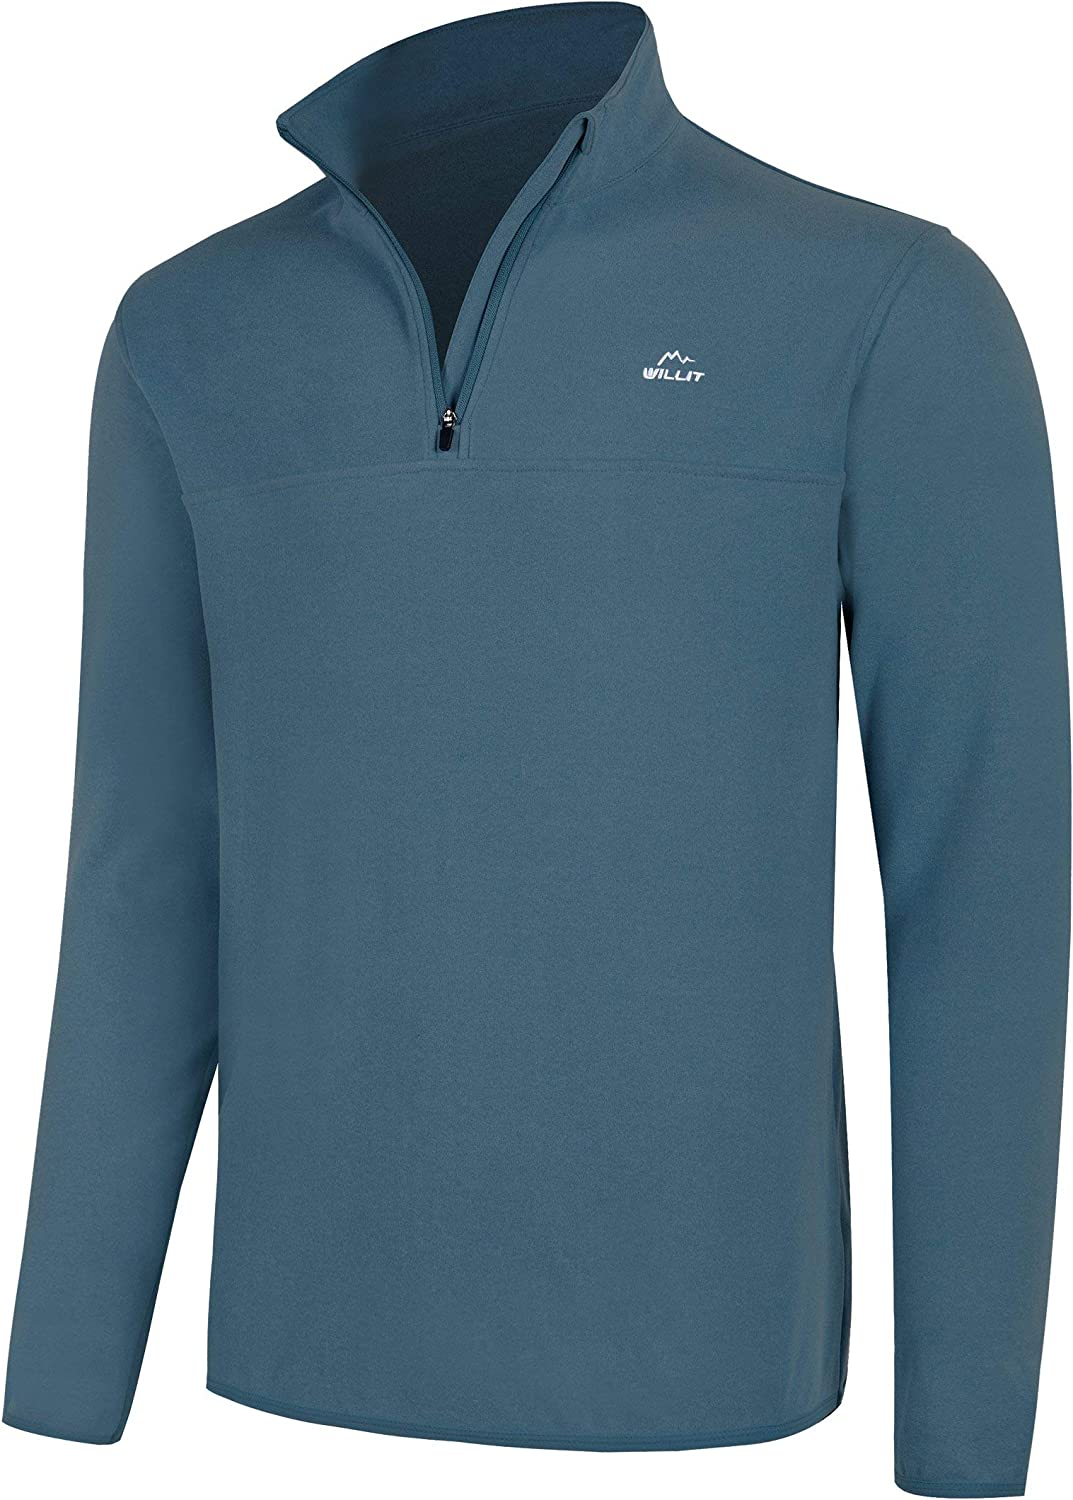 Willit Men's Fleece Golf Pullover Sweaters Quarter-Zip Hiking 1/4 Zip Thermal Jacket Lightweight: Clothing